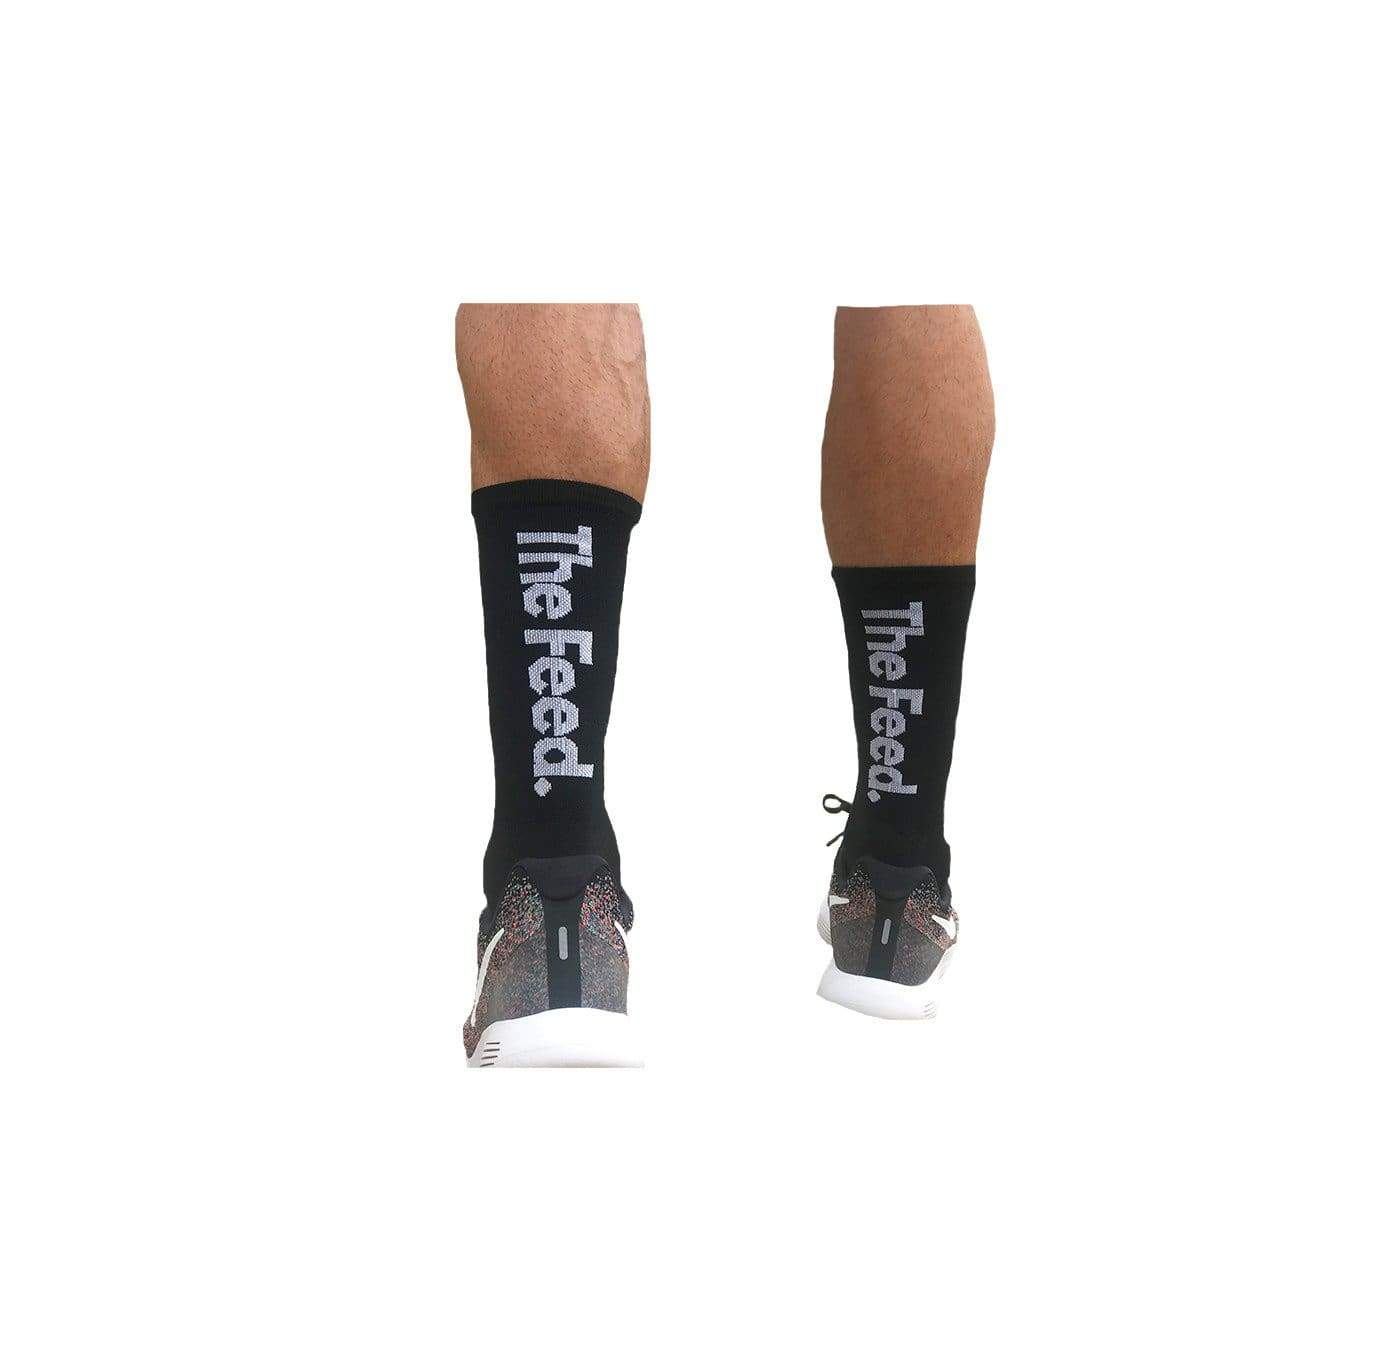 The Feed Multisport Socks - Black Gear Extra Large